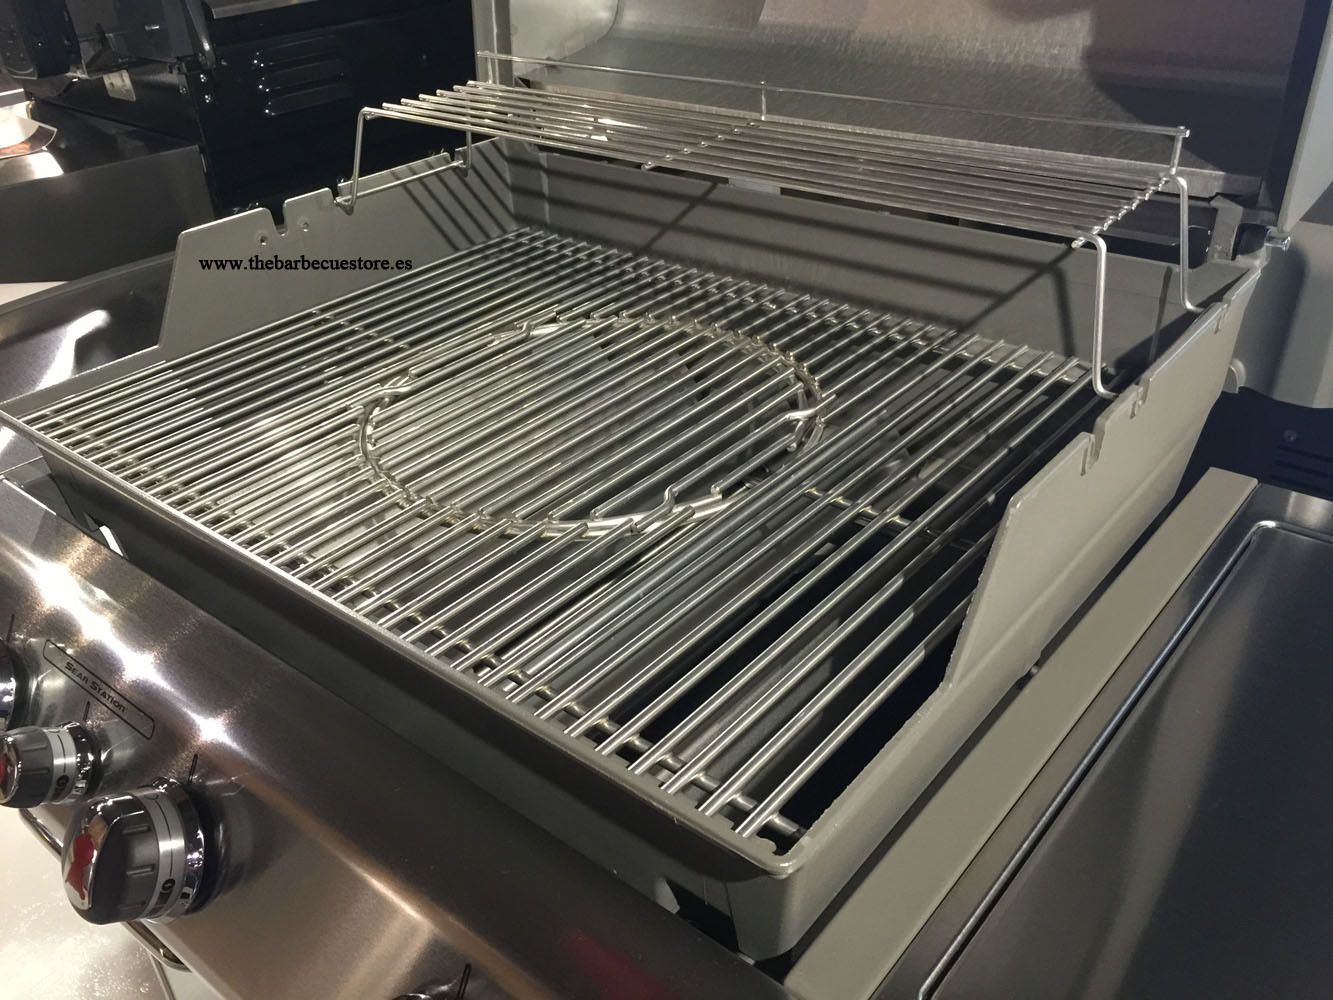 weber genesis s 330 gbs stainless steel bbq the barbecue store. Black Bedroom Furniture Sets. Home Design Ideas